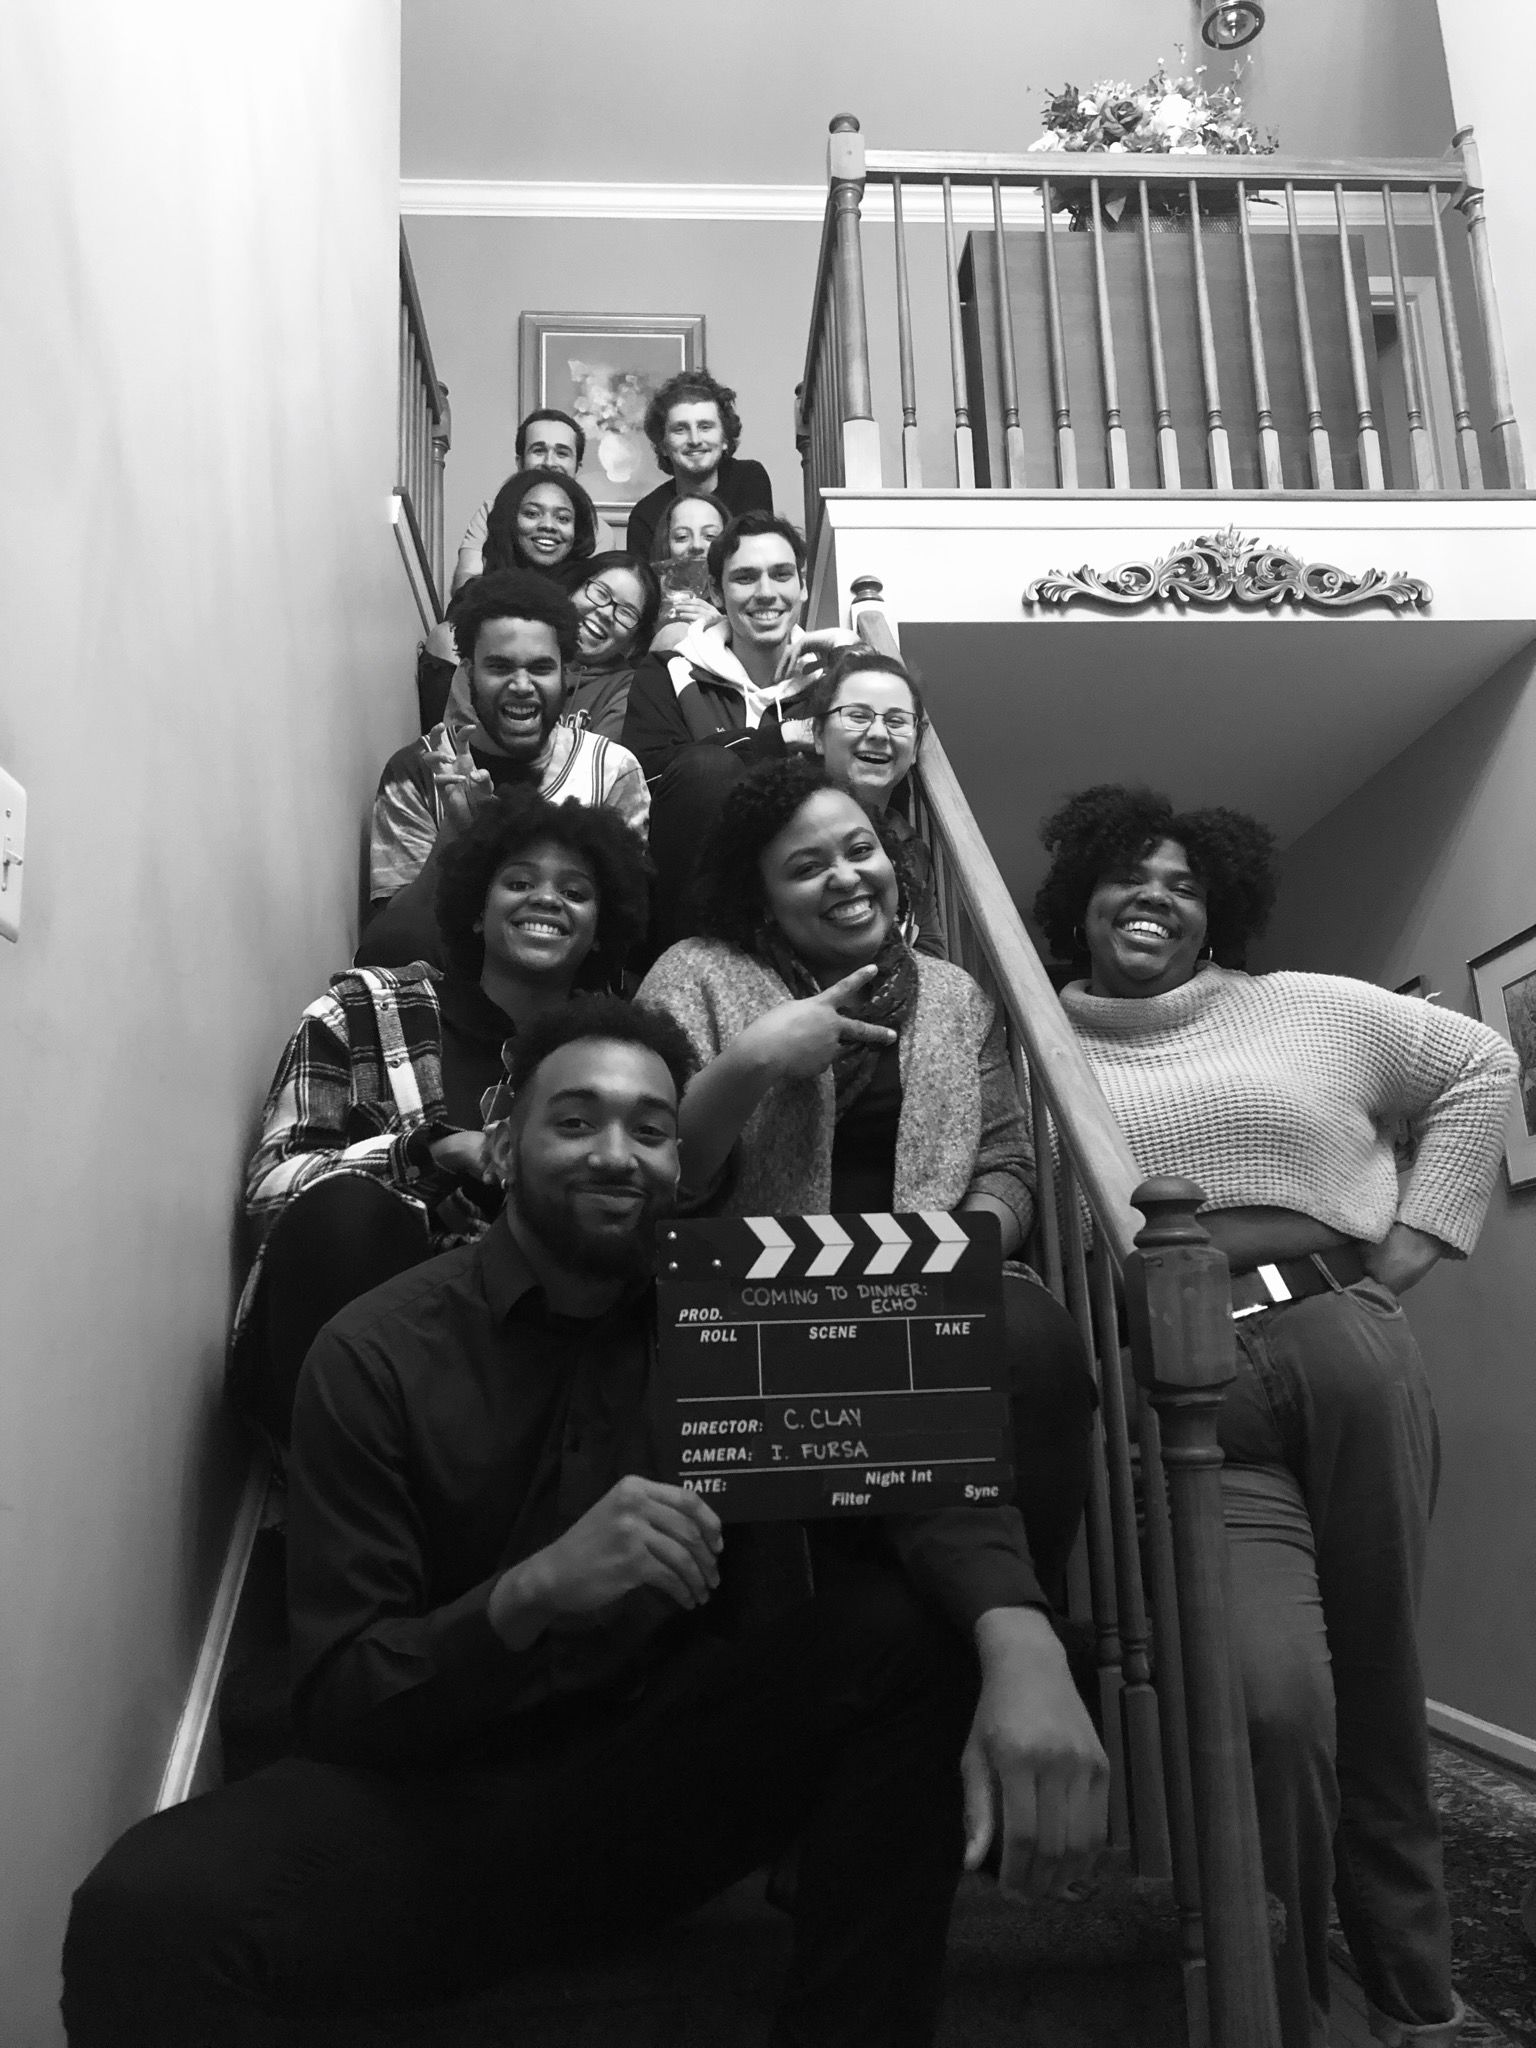 TFMA students gather for a black and white photo in a stairwell.